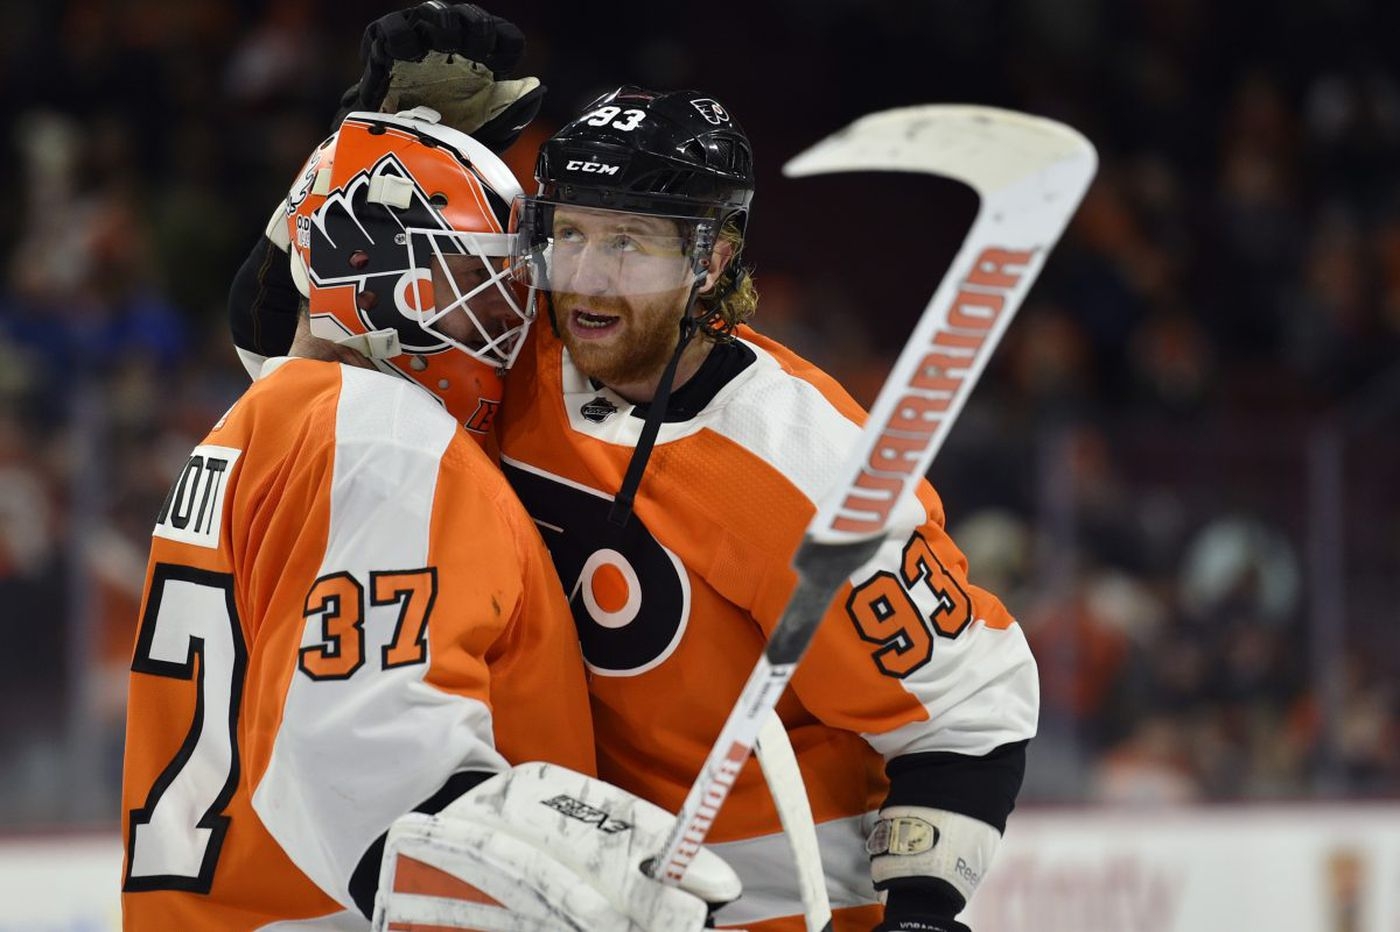 Flyers' report cards at the break: From A-pluses to a D-minus